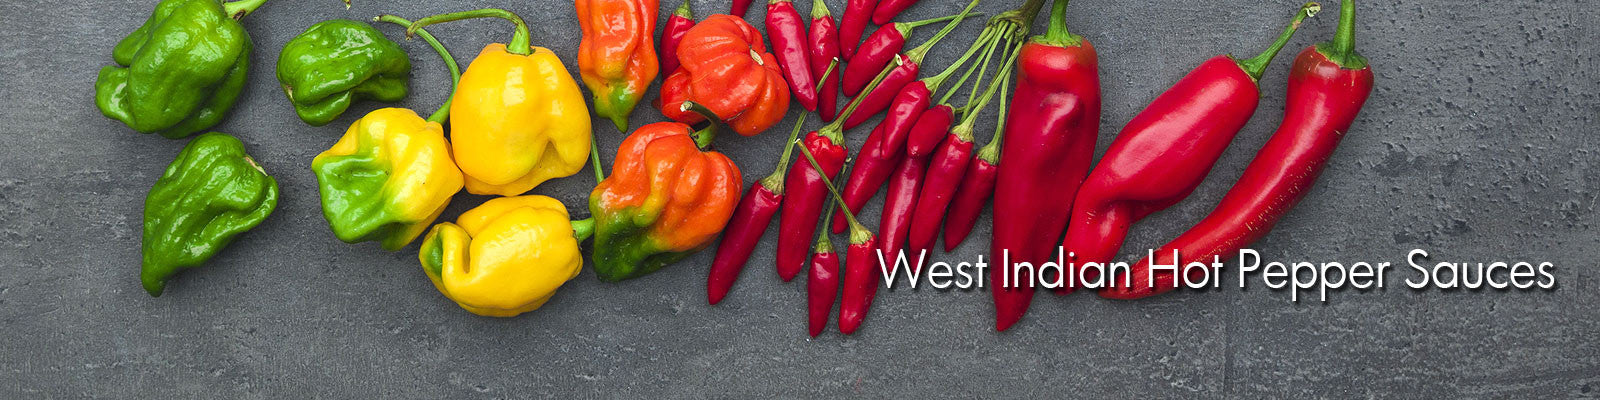 West Indian Hot Pepper Sauces